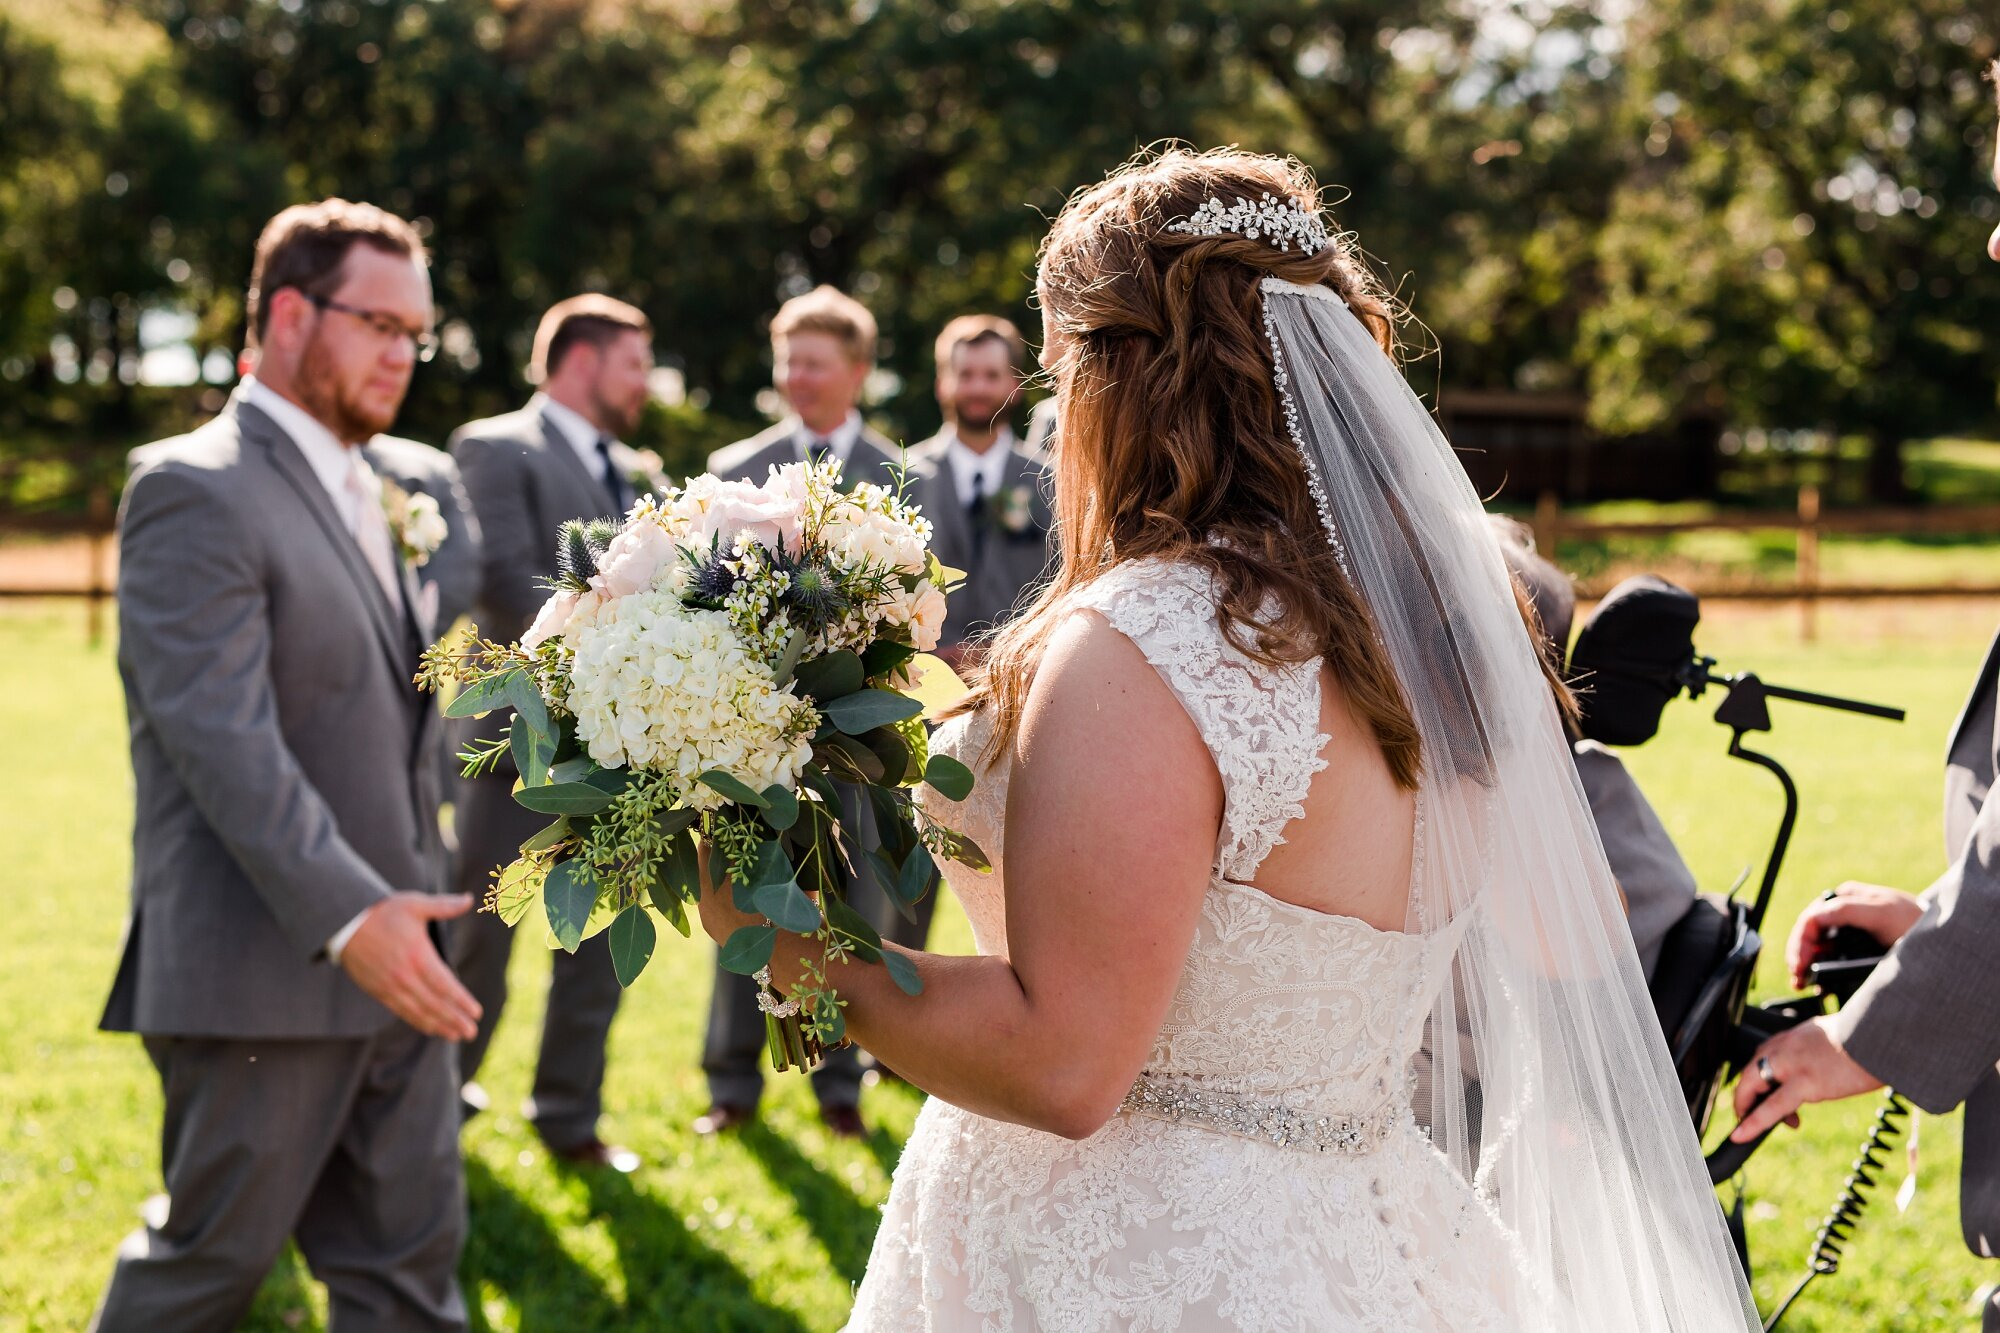 Amber Langerud Photography_Lake Park Minnesota, Outdoor Barn Wedding With Horses_6984.jpg